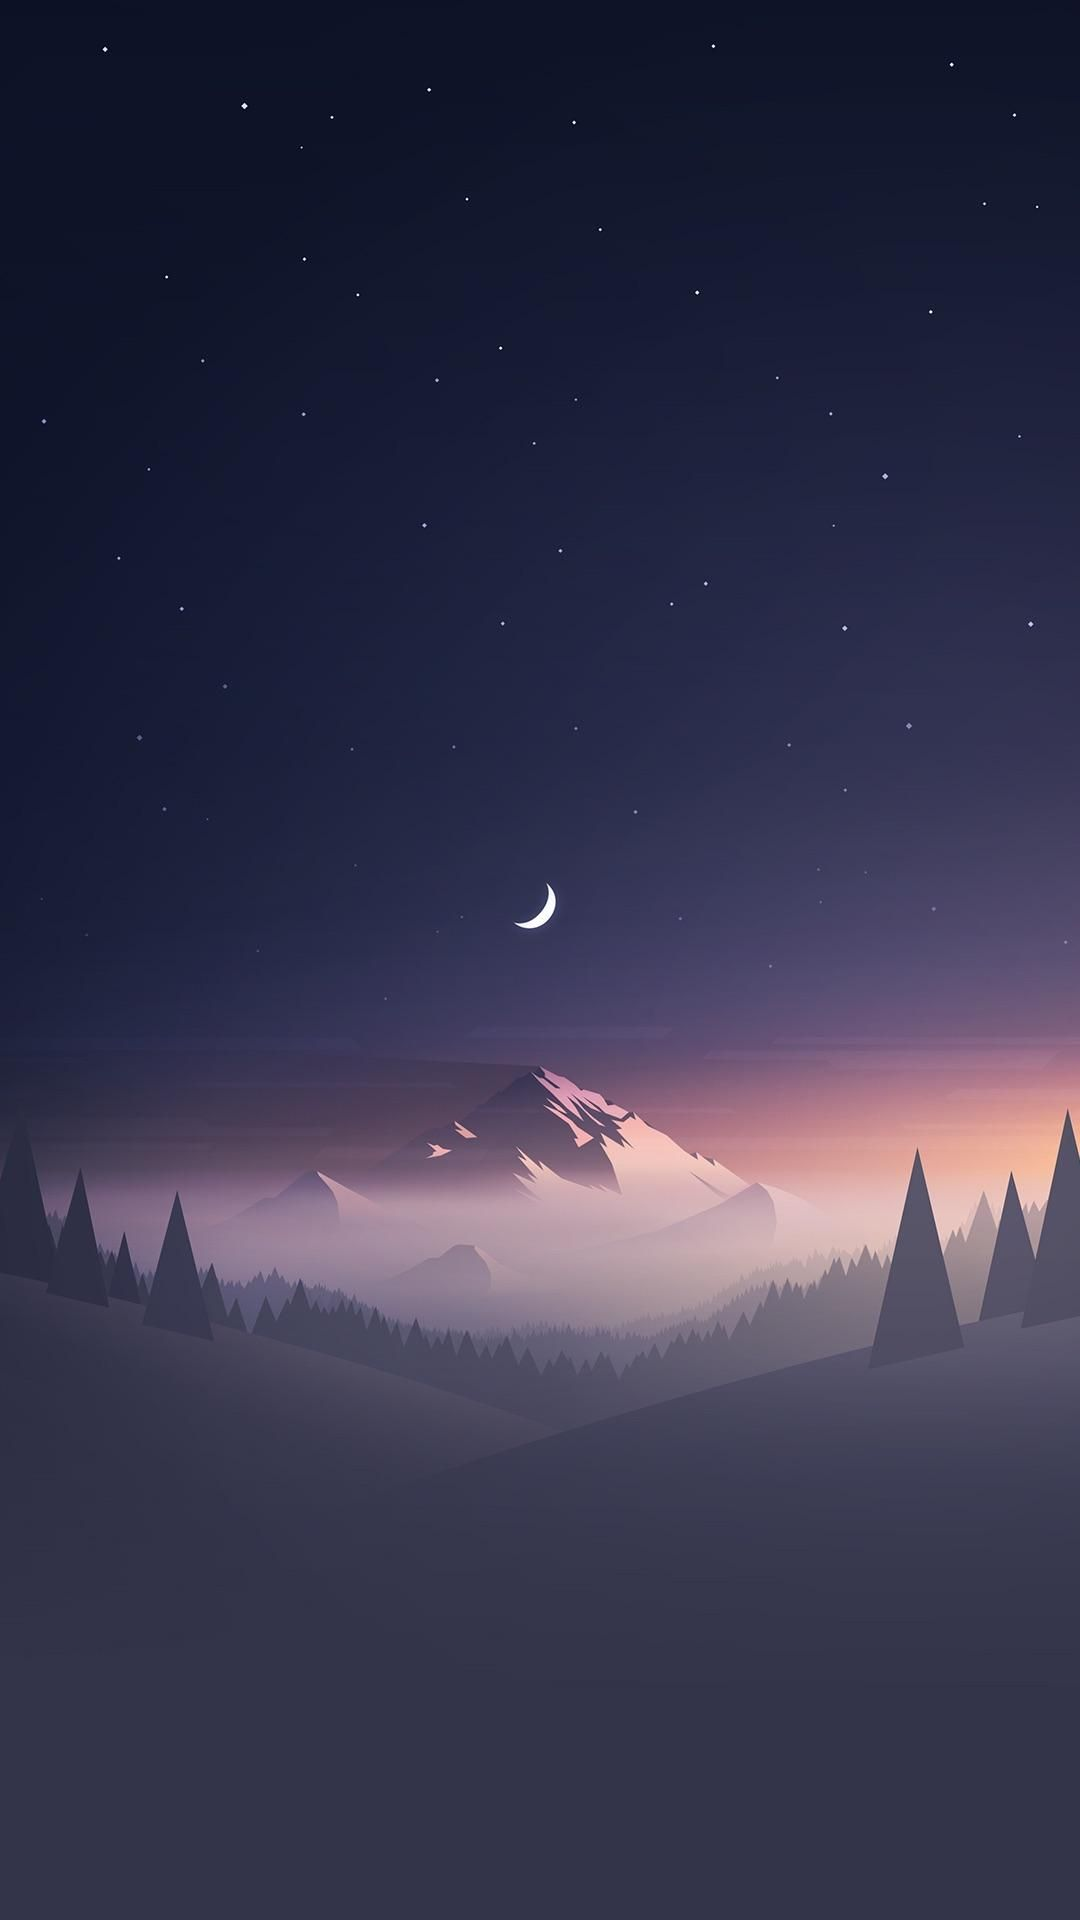 A Simple Wallpaper 1080x1920 1 98mp 190 96 Kb Landscape Wallpaper Minimalist Wallpaper Nature Wallpaper